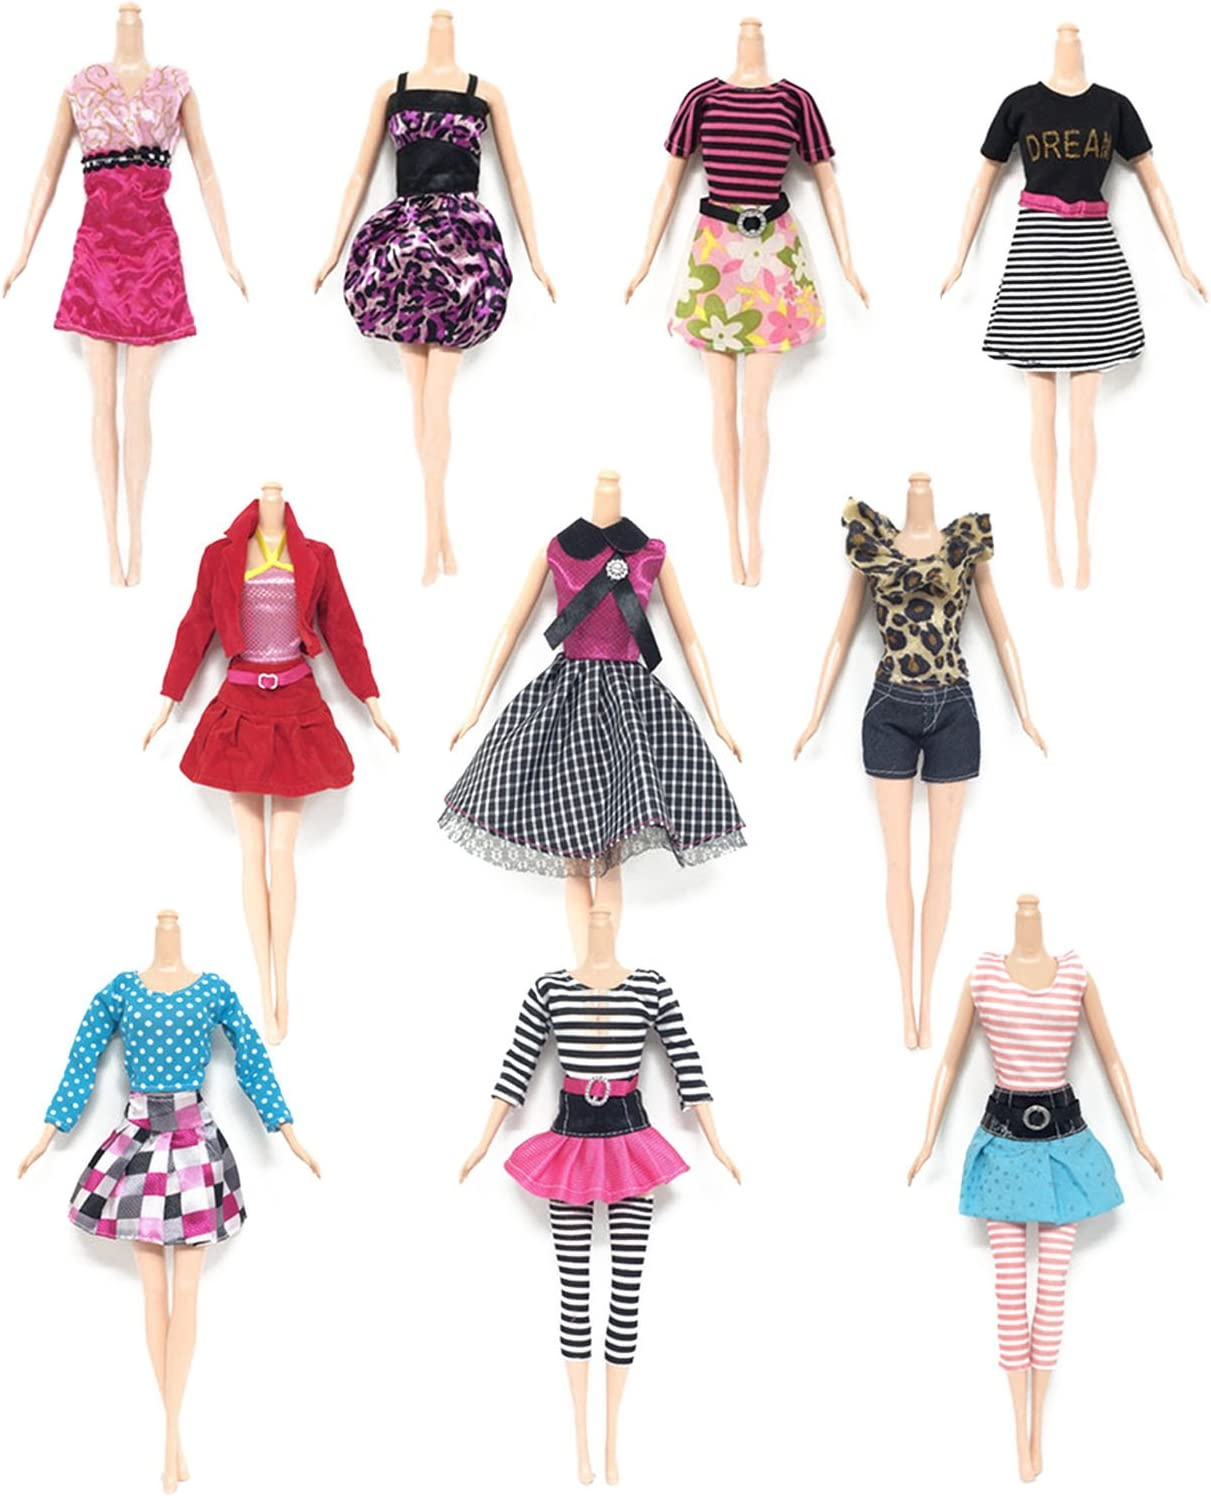 NEW Random 10pcs Dresses Clothes For Dolls Figures Toys Girl Ladys Best Gift